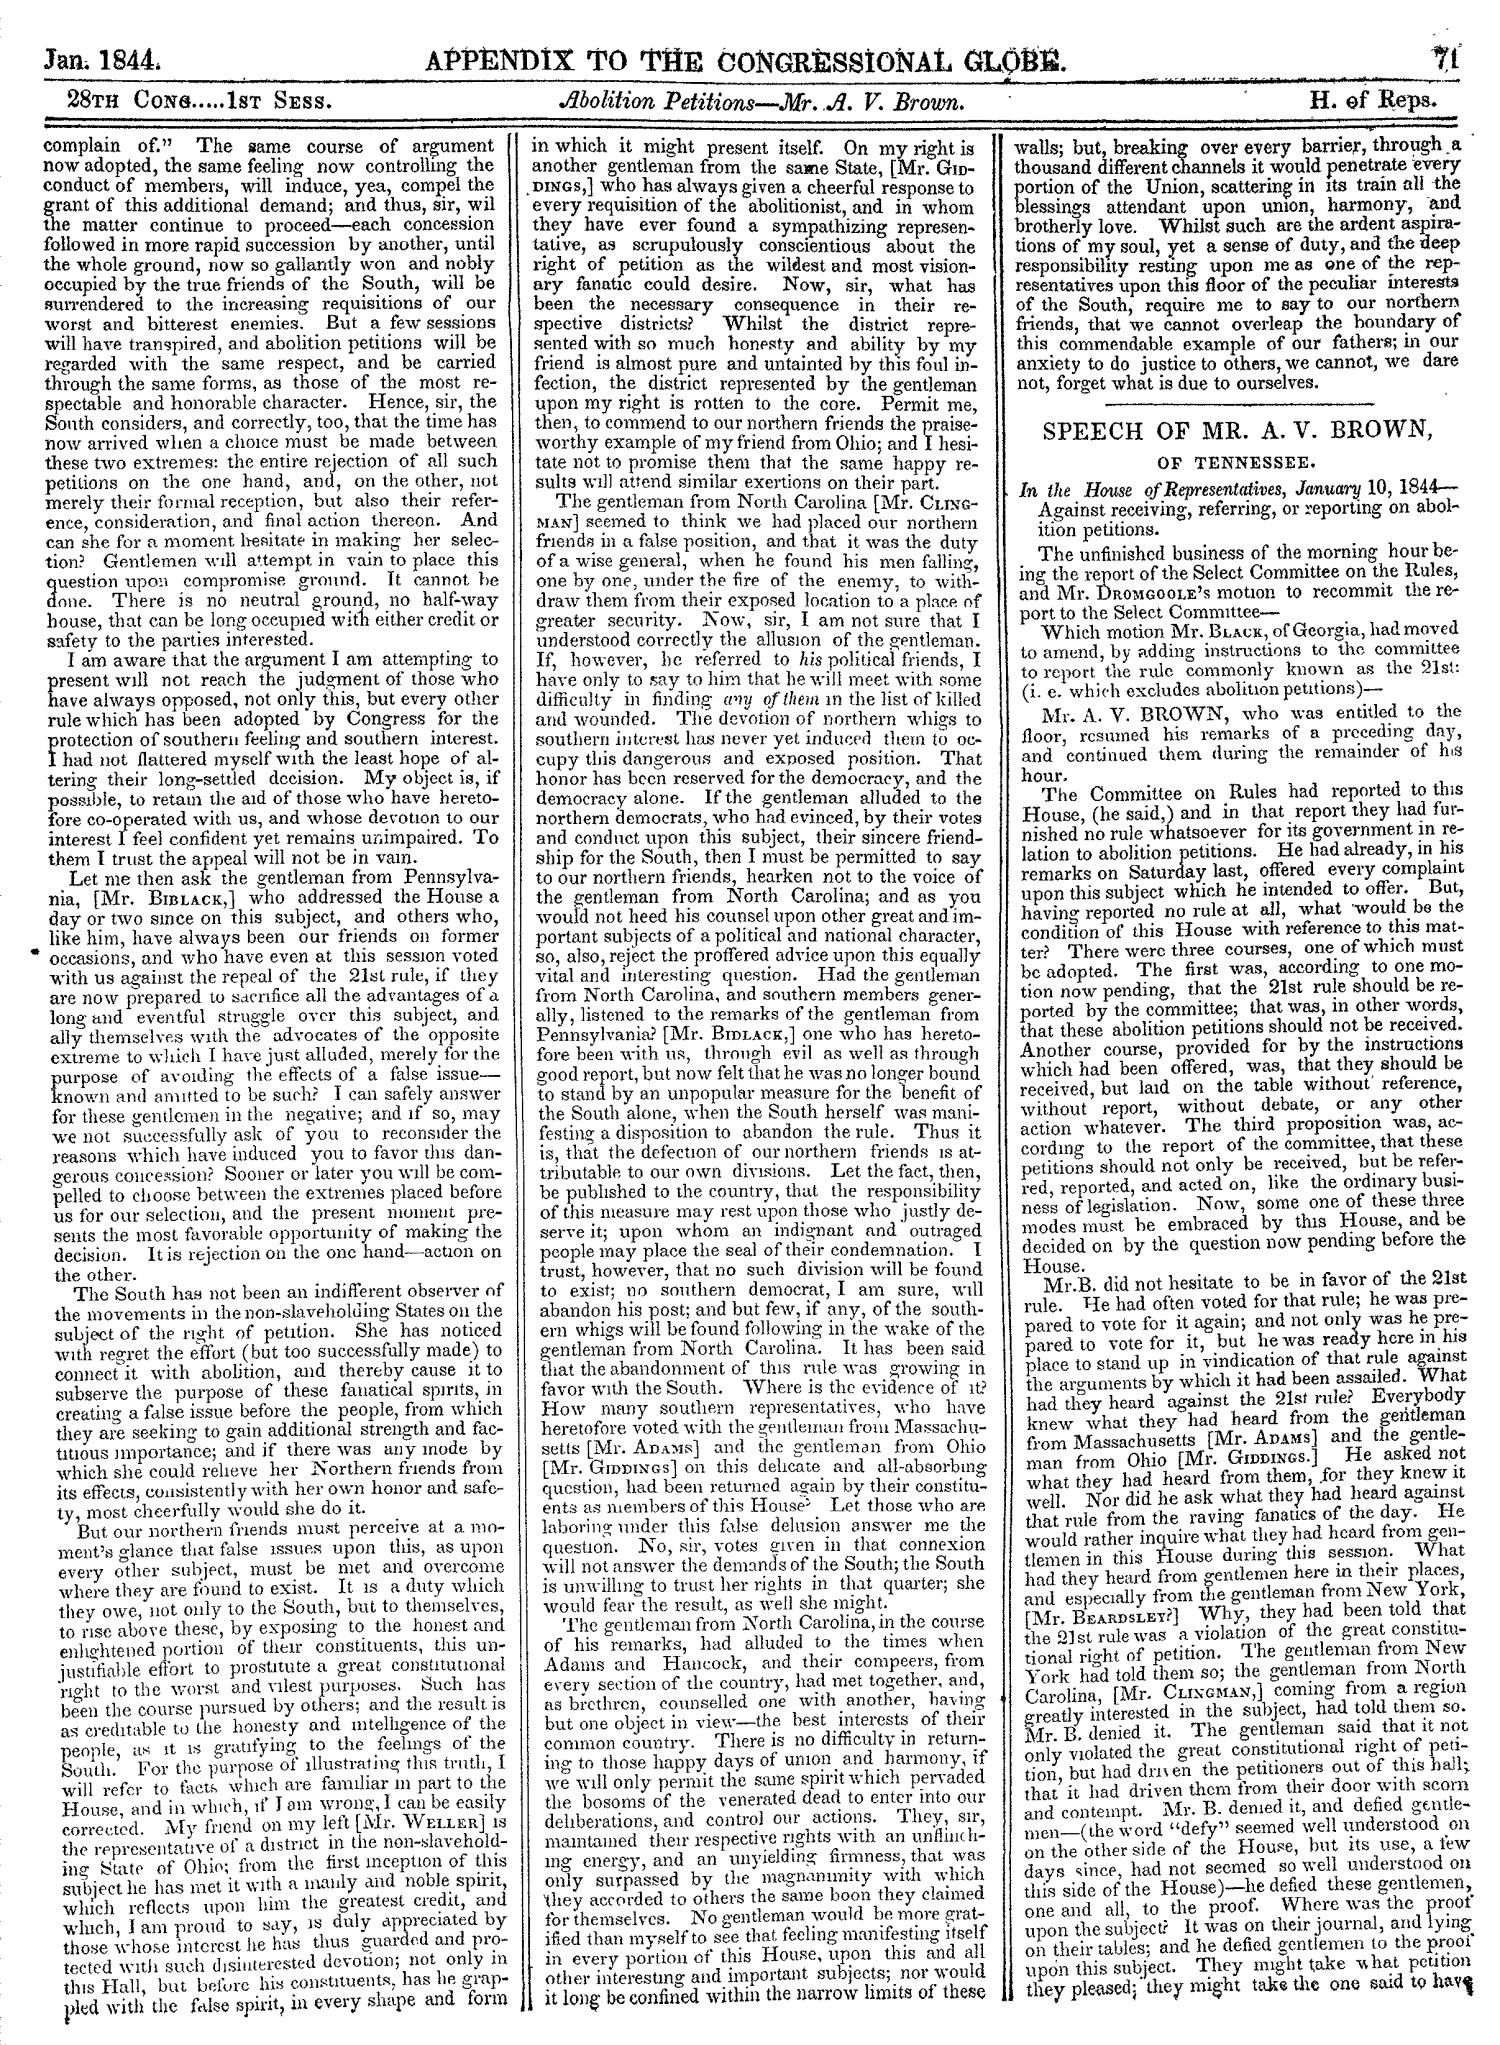 The Congressional Globe, Volume 13, Part 2: Twenty-Eighth Congress, First Session                                                                                                      71